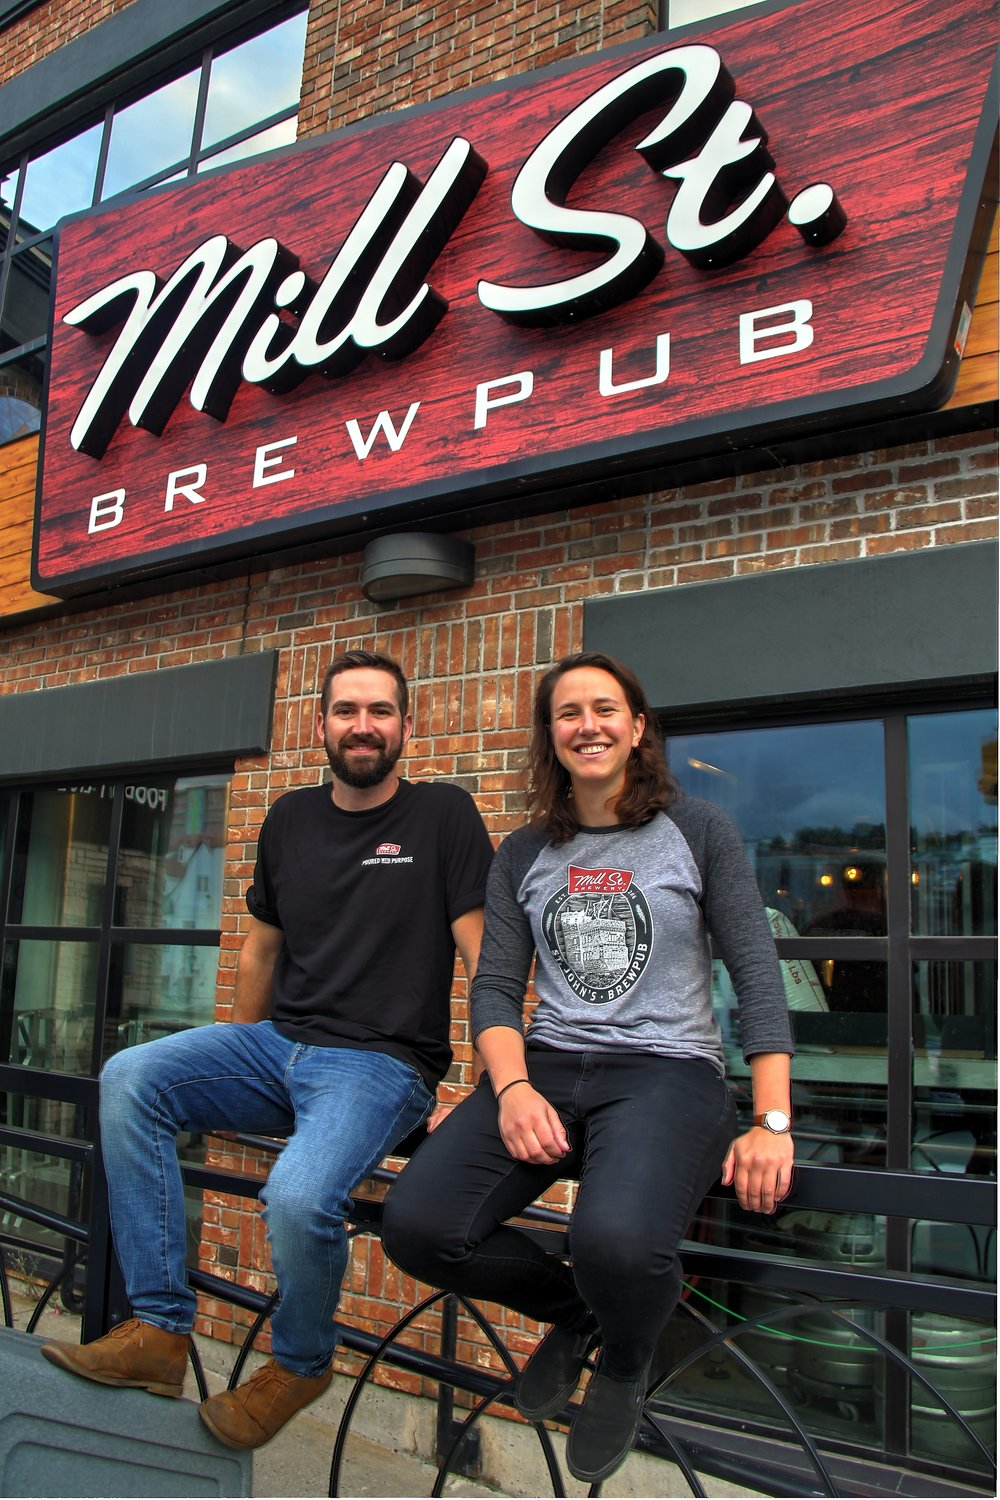 Jordan and Jacoba courtest of Mill Street Brewpub St. John's.